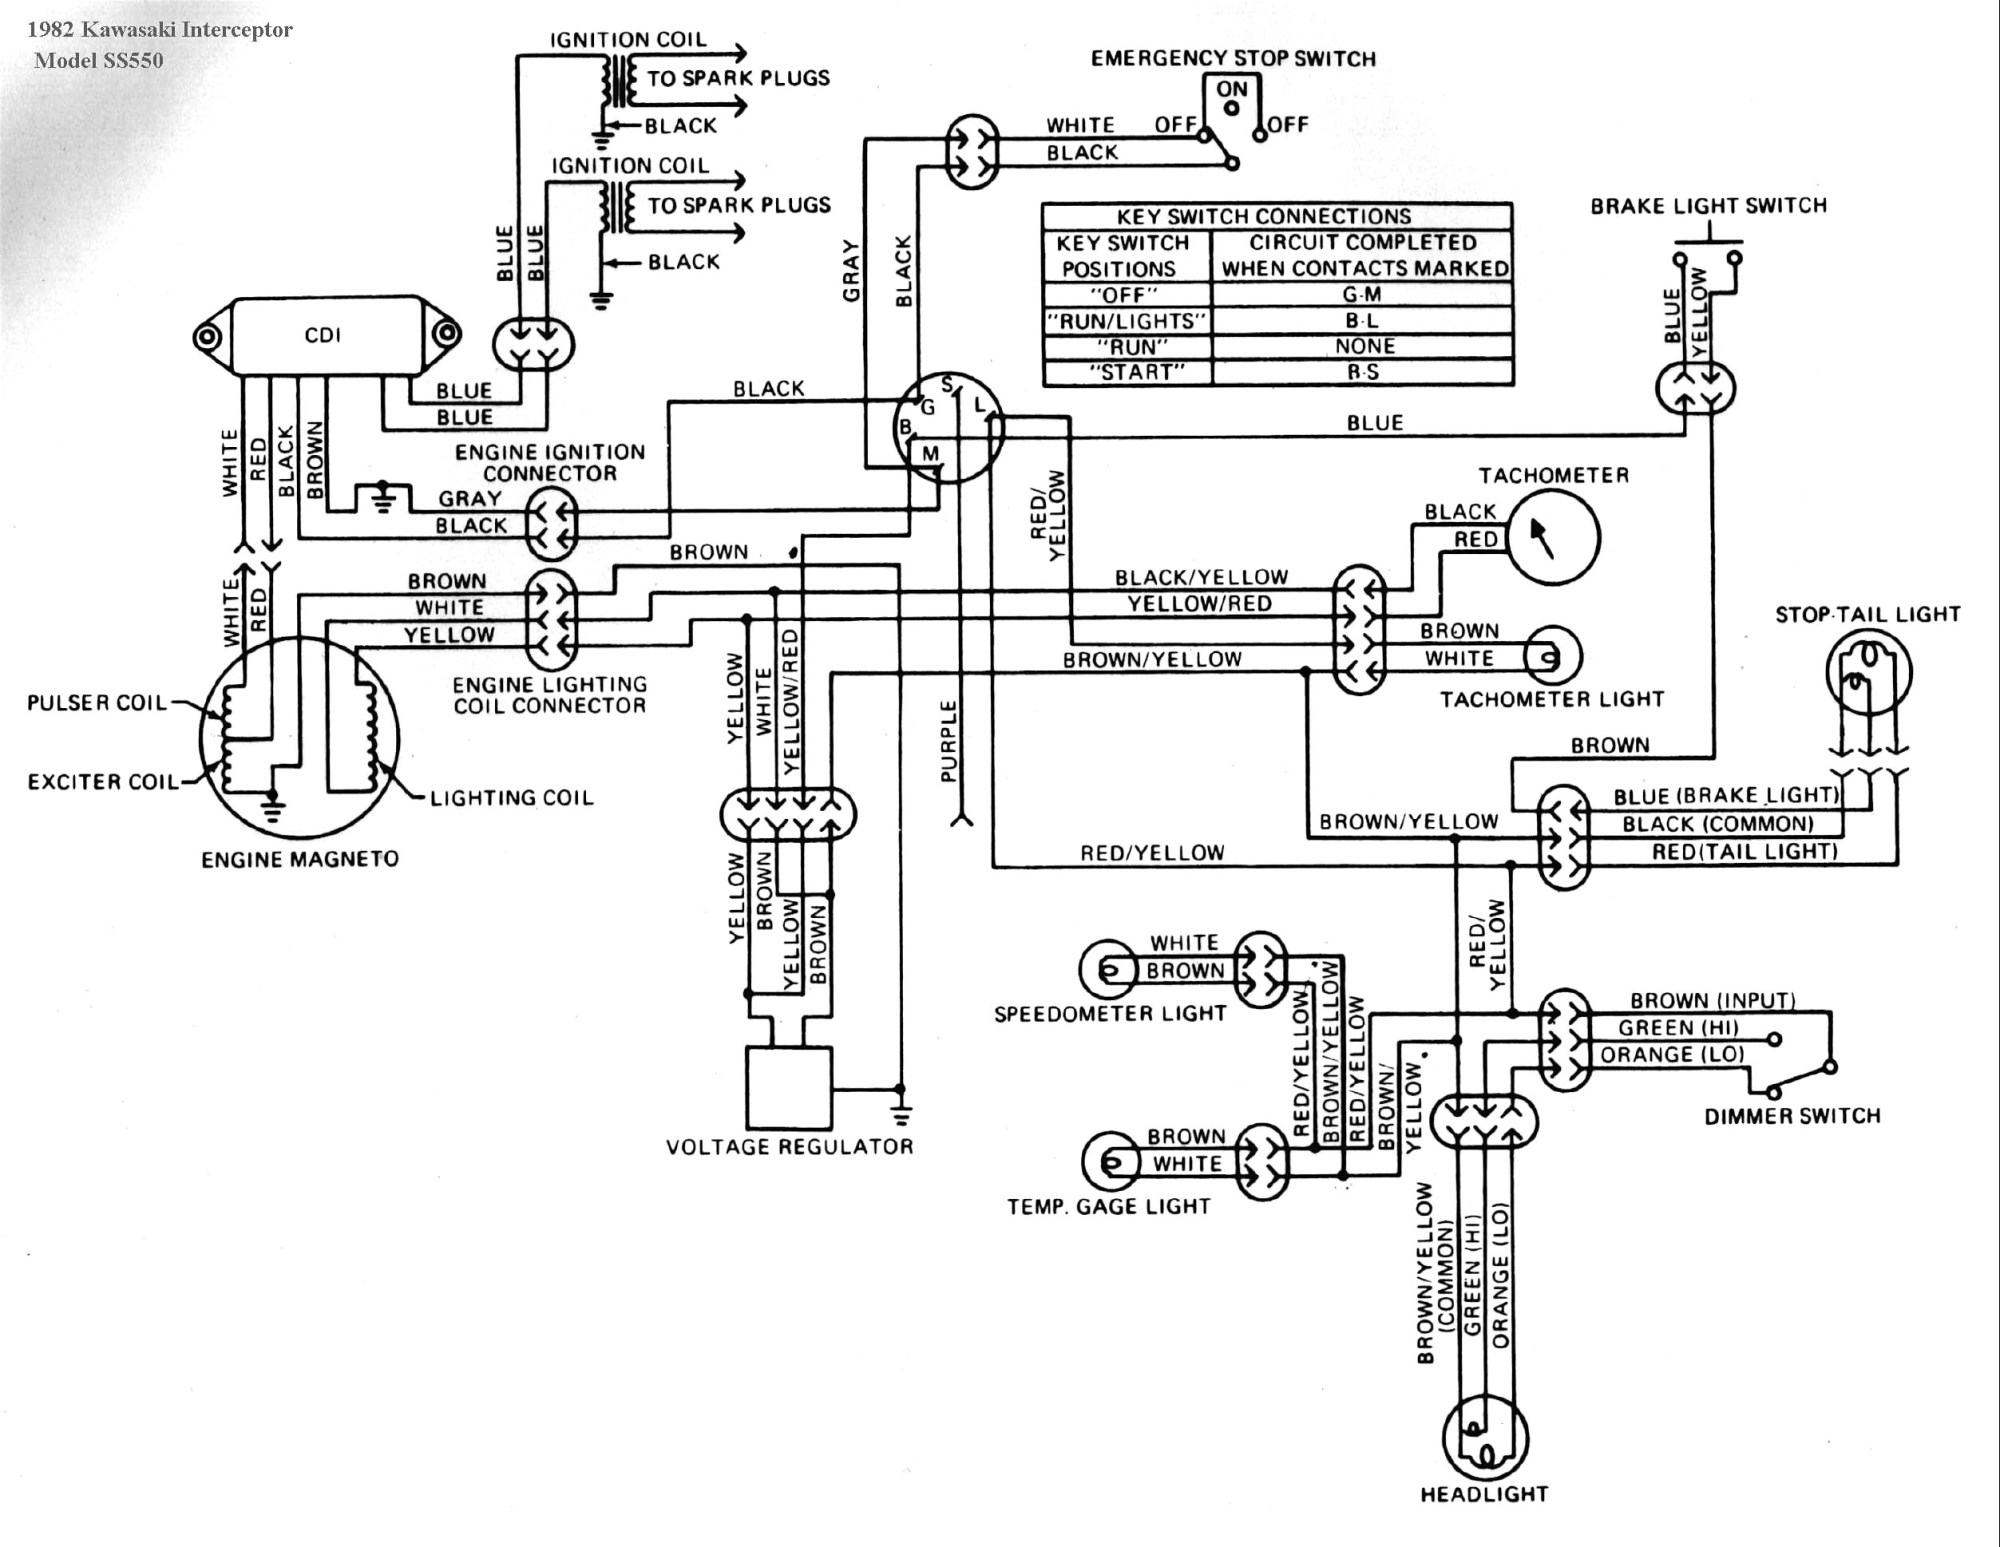 hight resolution of kdx 220 wiring diagram wiring diagram pass 1991 kawasaki kdx 200 wiring